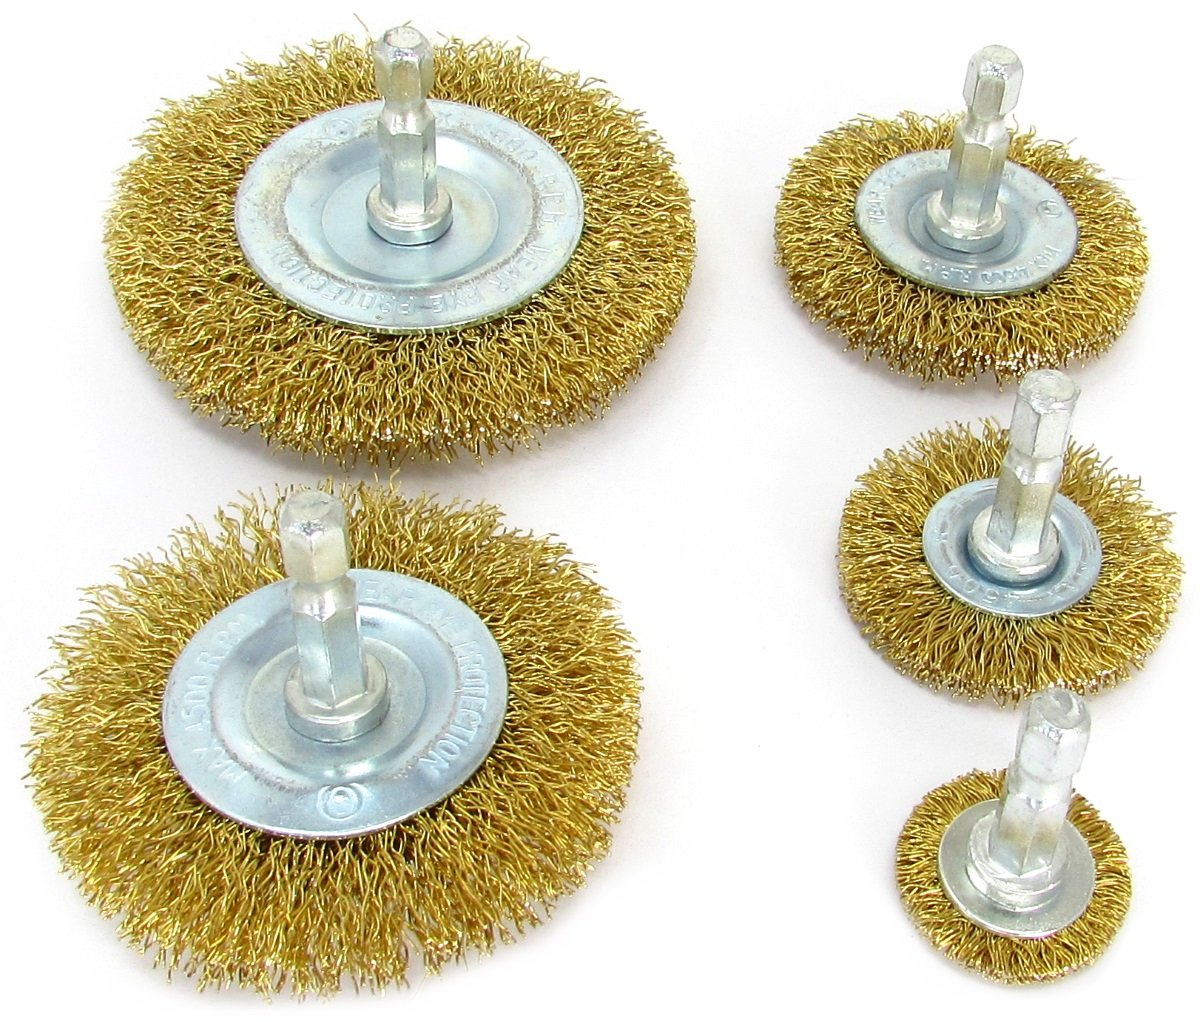 5pk Circular Wire Wheel Brush Attachment Set for Drill, Brass Coated Bristles by LINE10 Tools